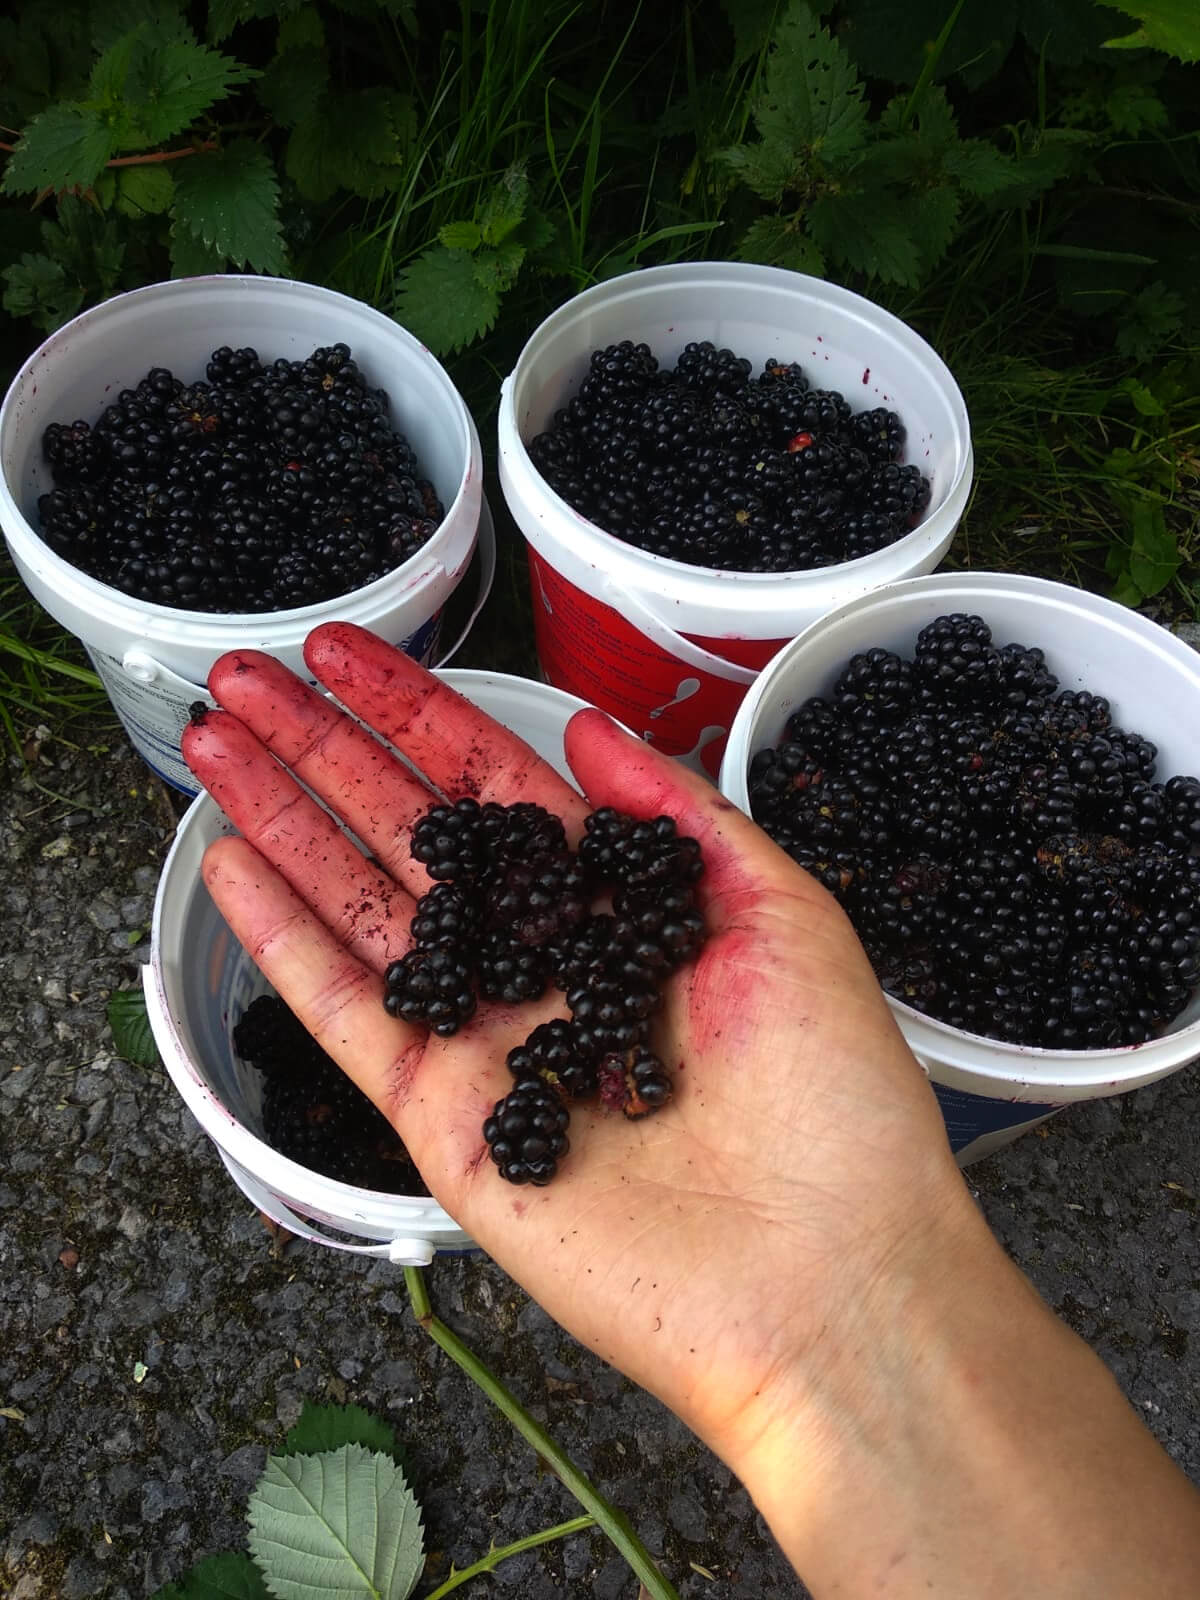 01: A family of asylum seekers are suffering under lockdown, but have found that making blackberry jam and sharing it with neighbours keeps them going